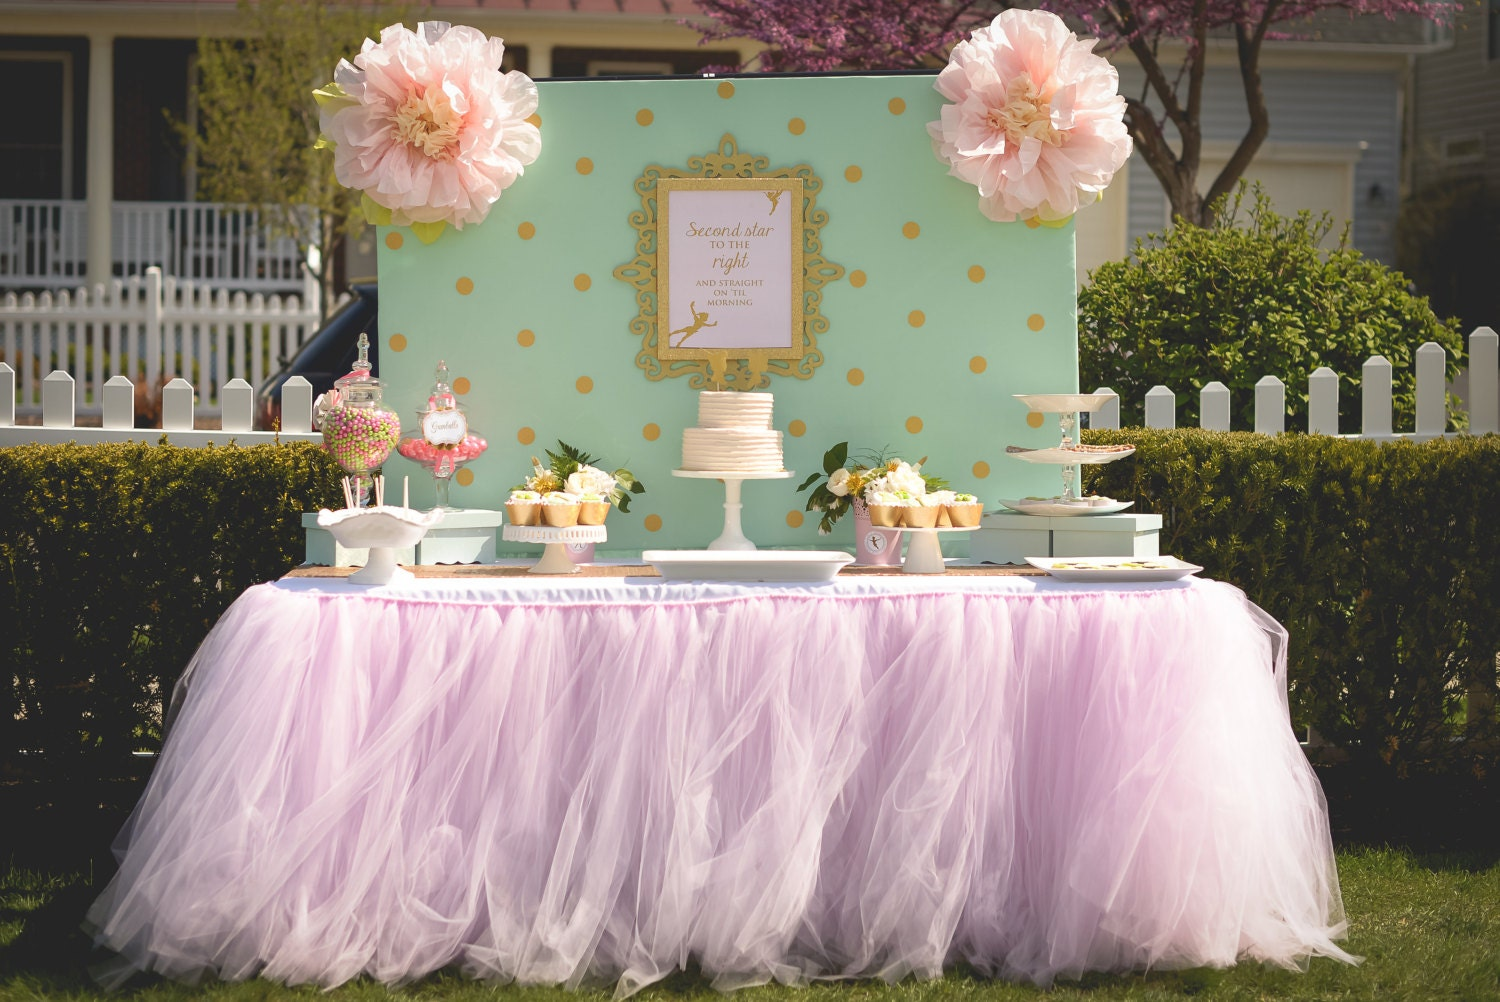 Buffet table skirting - Pale Pink Tutu Table Skirt